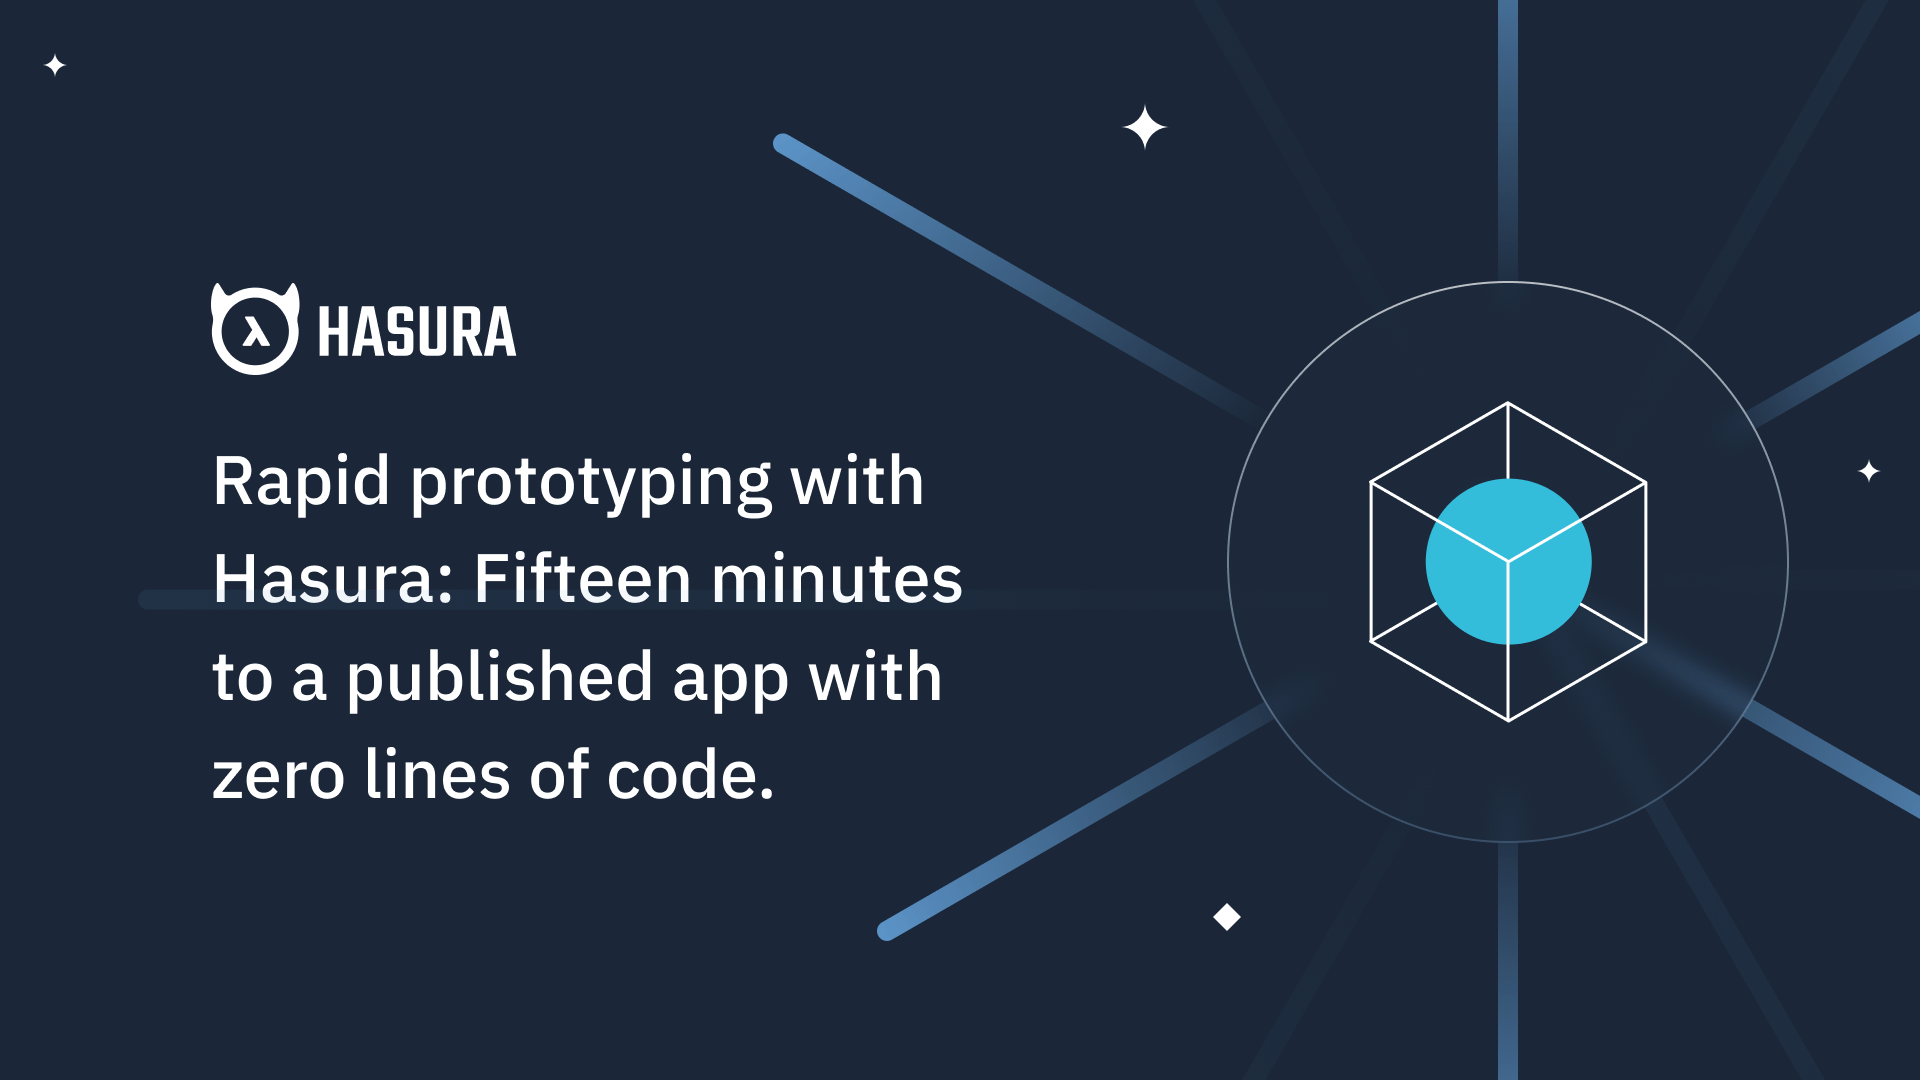 Rapid Prototyping with Hasura: Fifteen minutes to a published app with zero lines of code